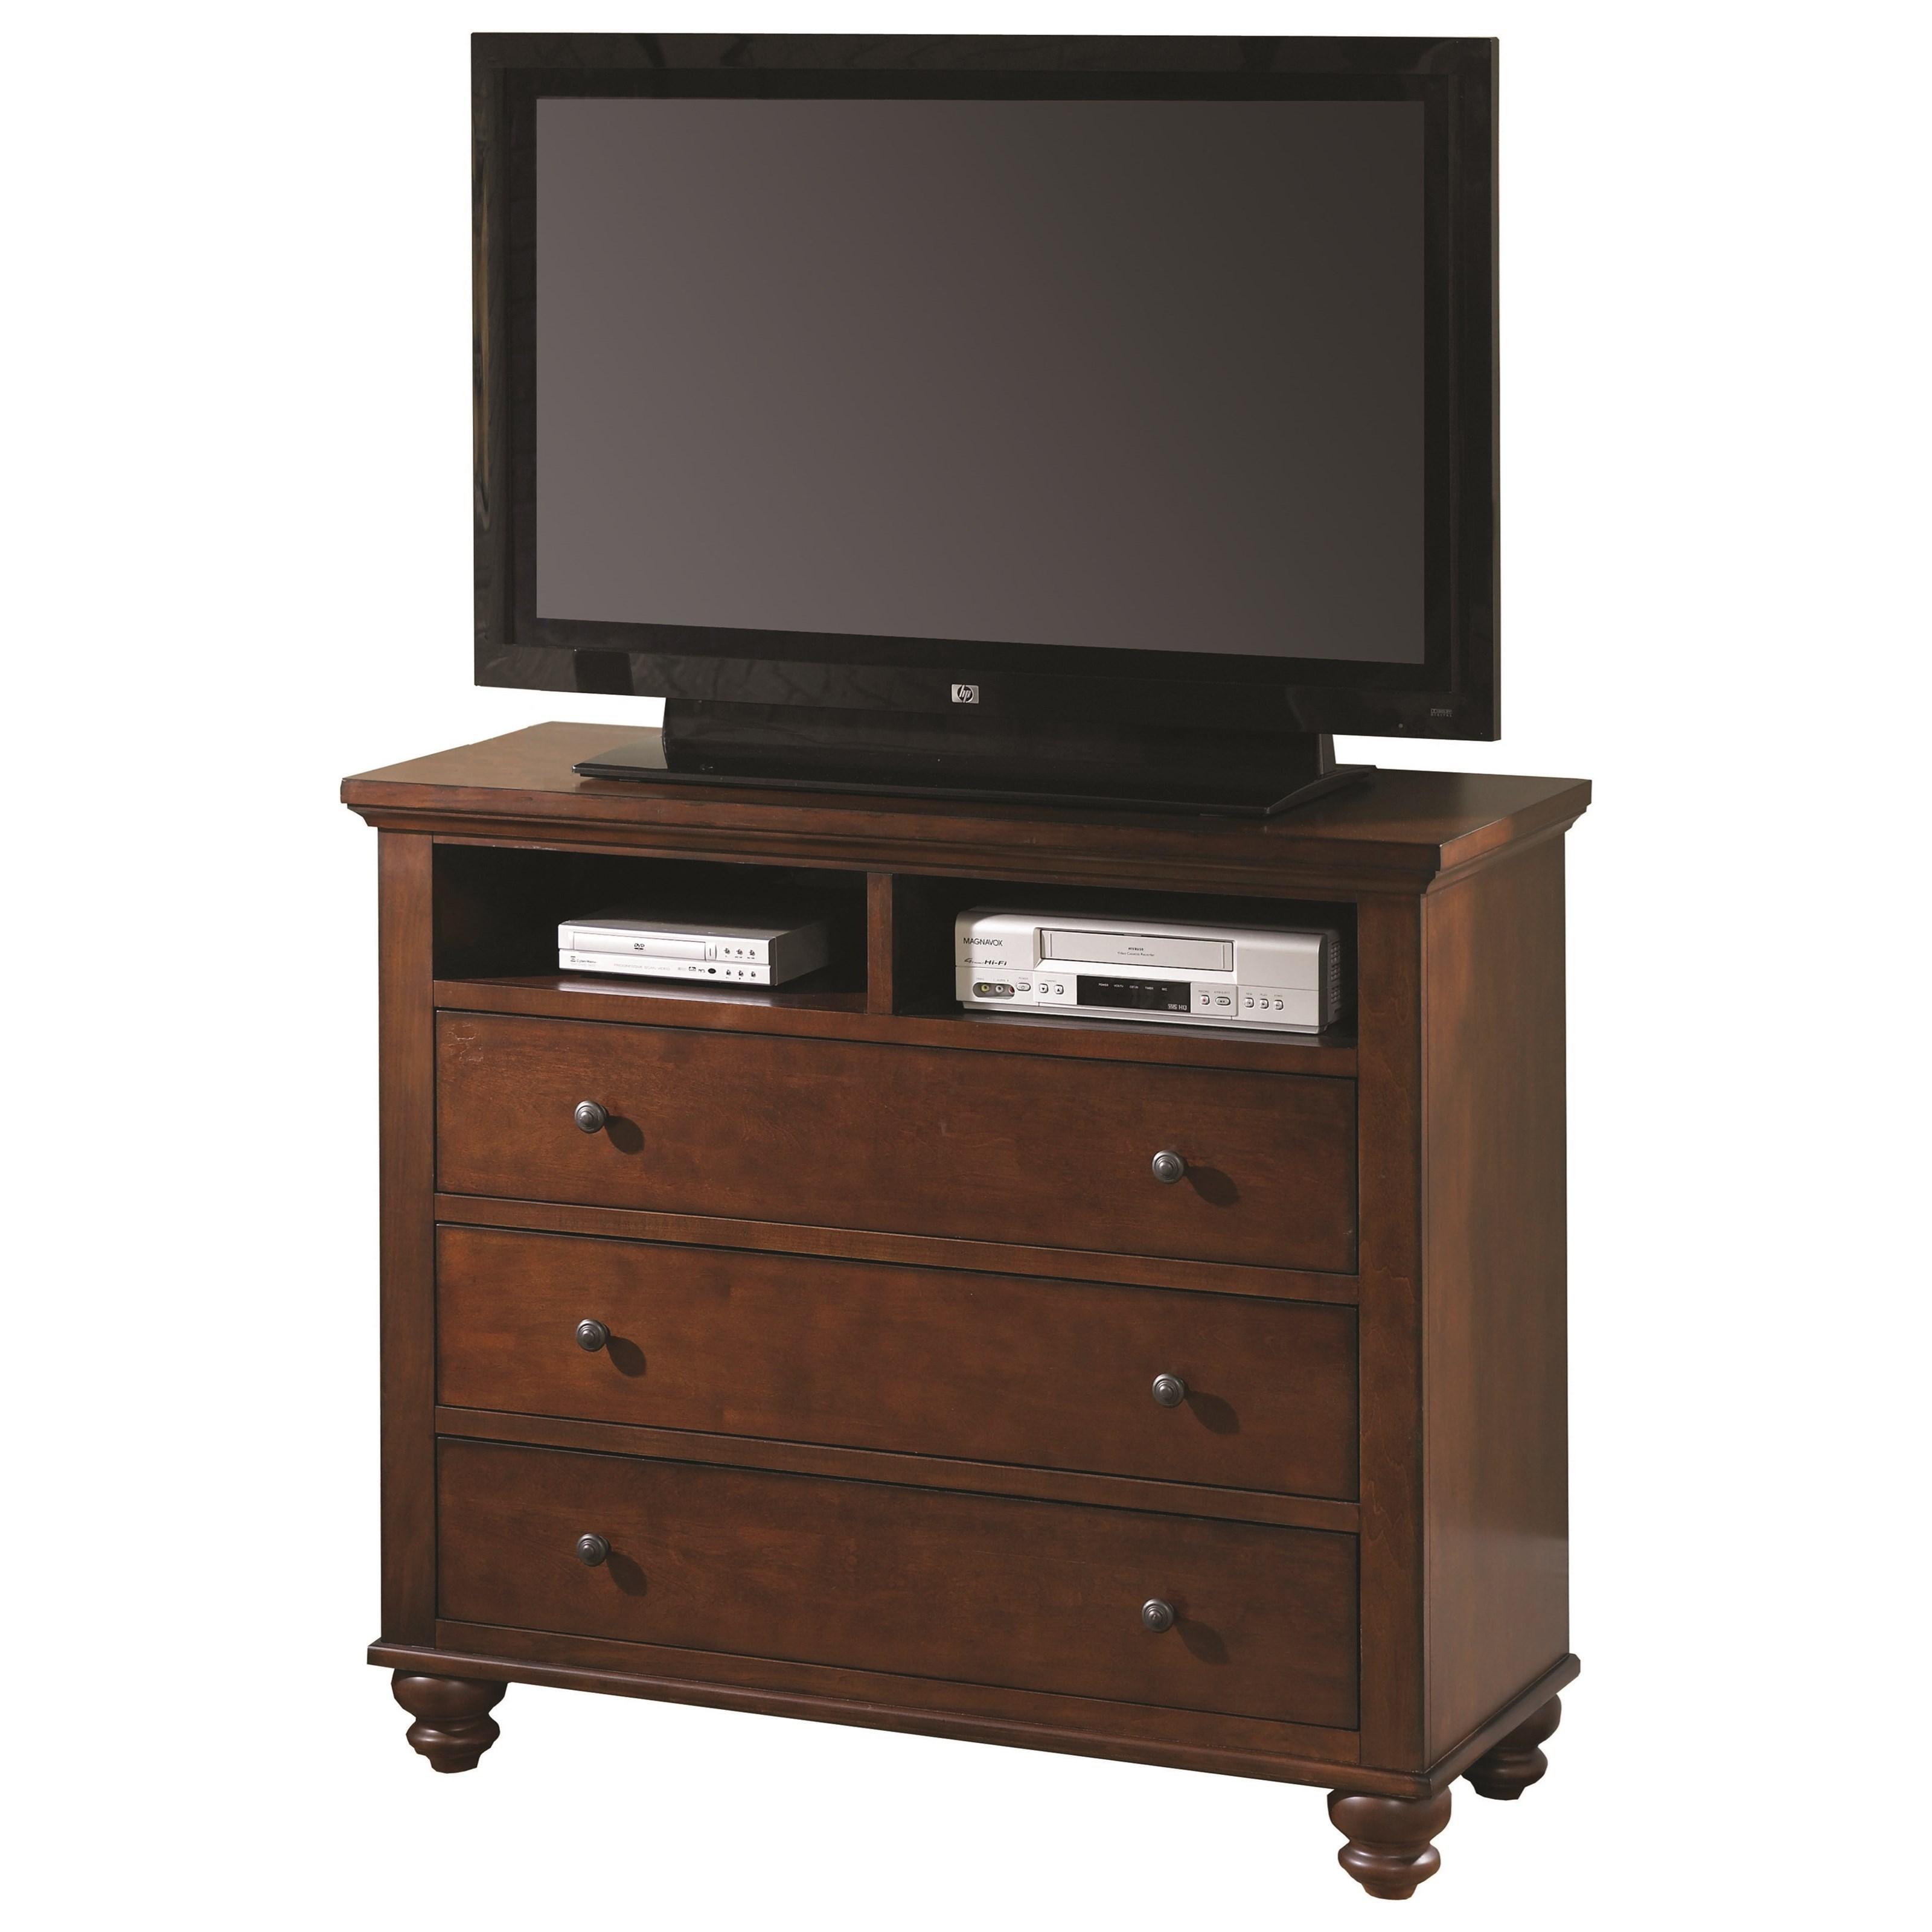 Aspenhome Cambridge Entertainment Chest - Item Number: ICB-485